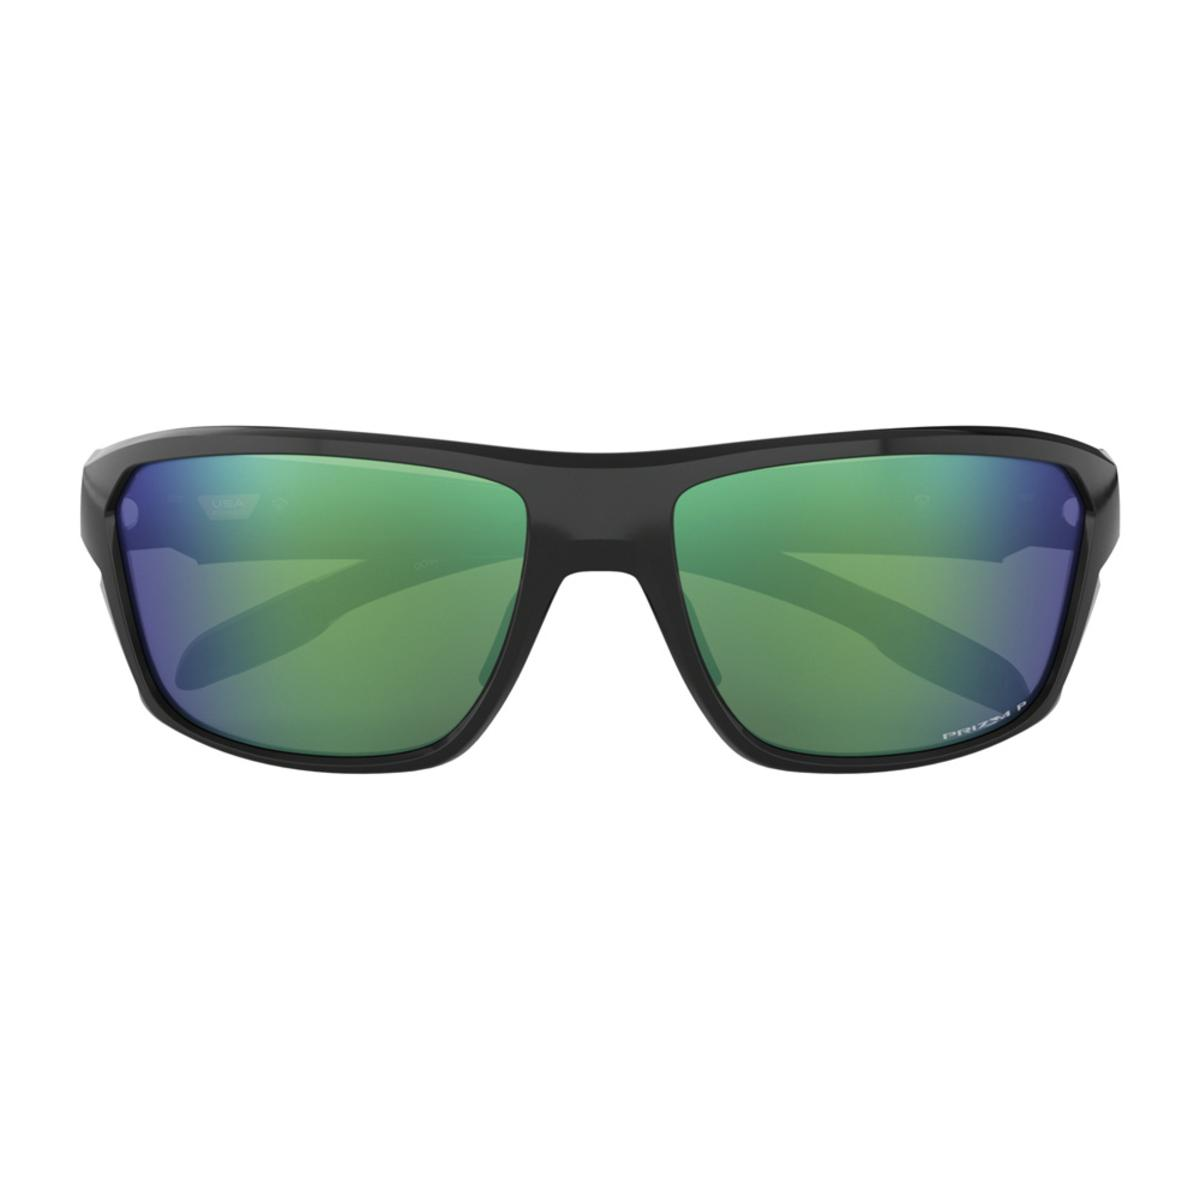 c1e59cc57f946 Oakley Split Shot Polished Black Sunglasses w Prizm Shallow Water Polarized  - The Warming Store